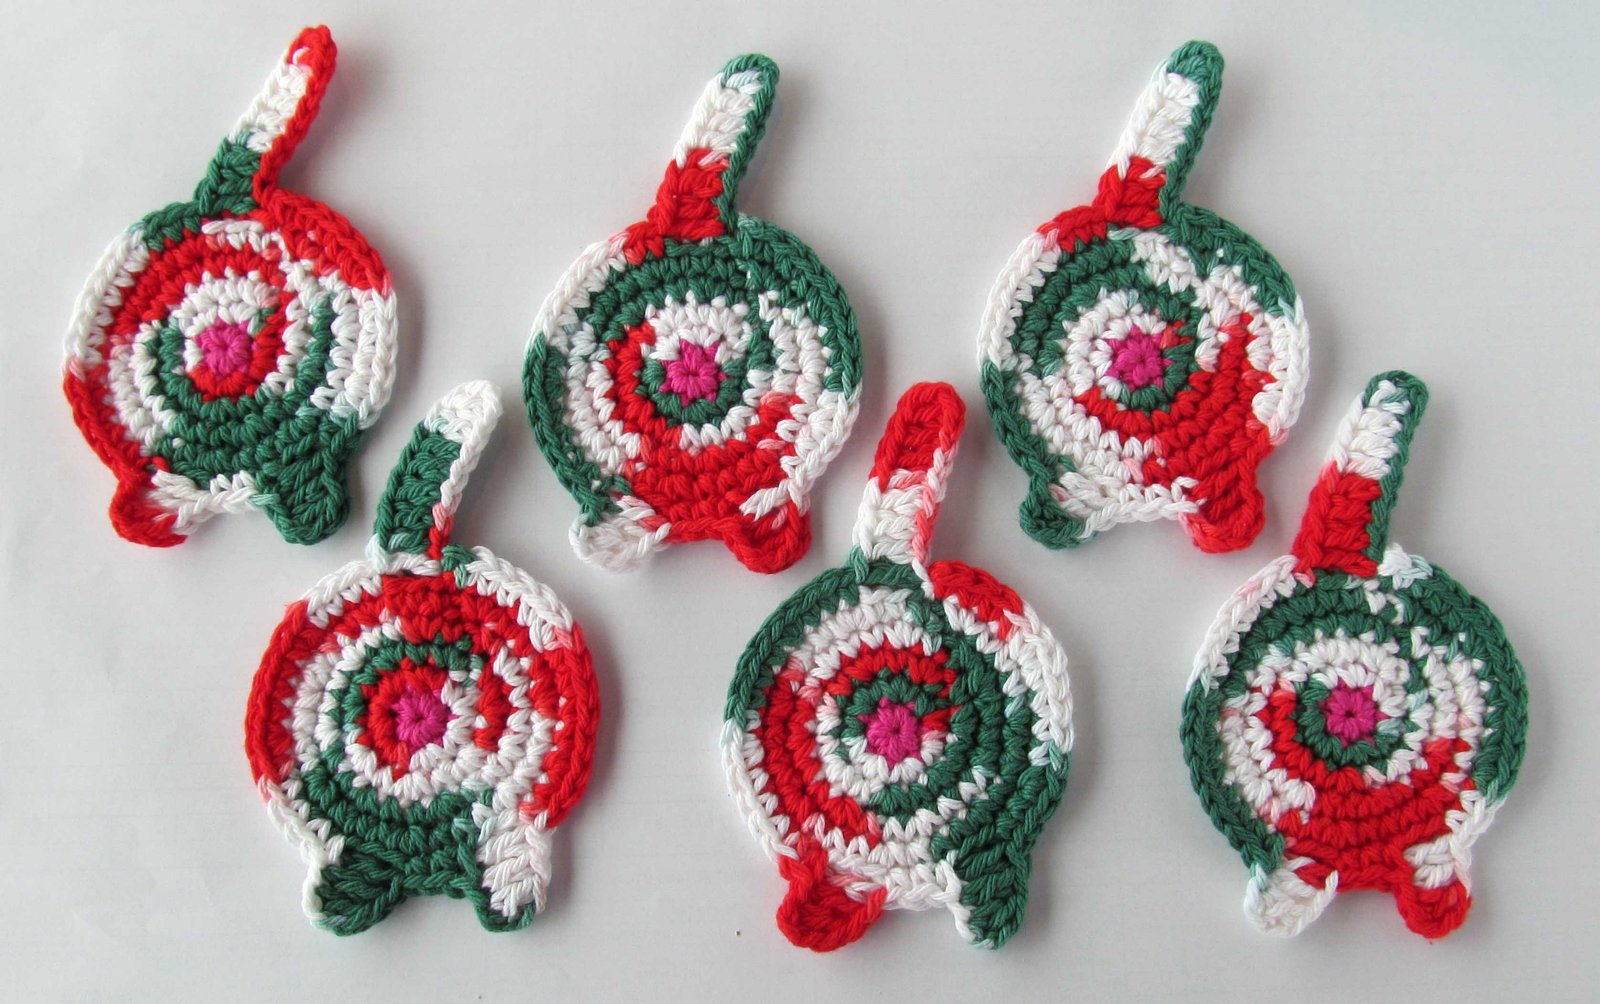 Cat Butt Coasters, Set of 6, Cotton, Christmas Calico